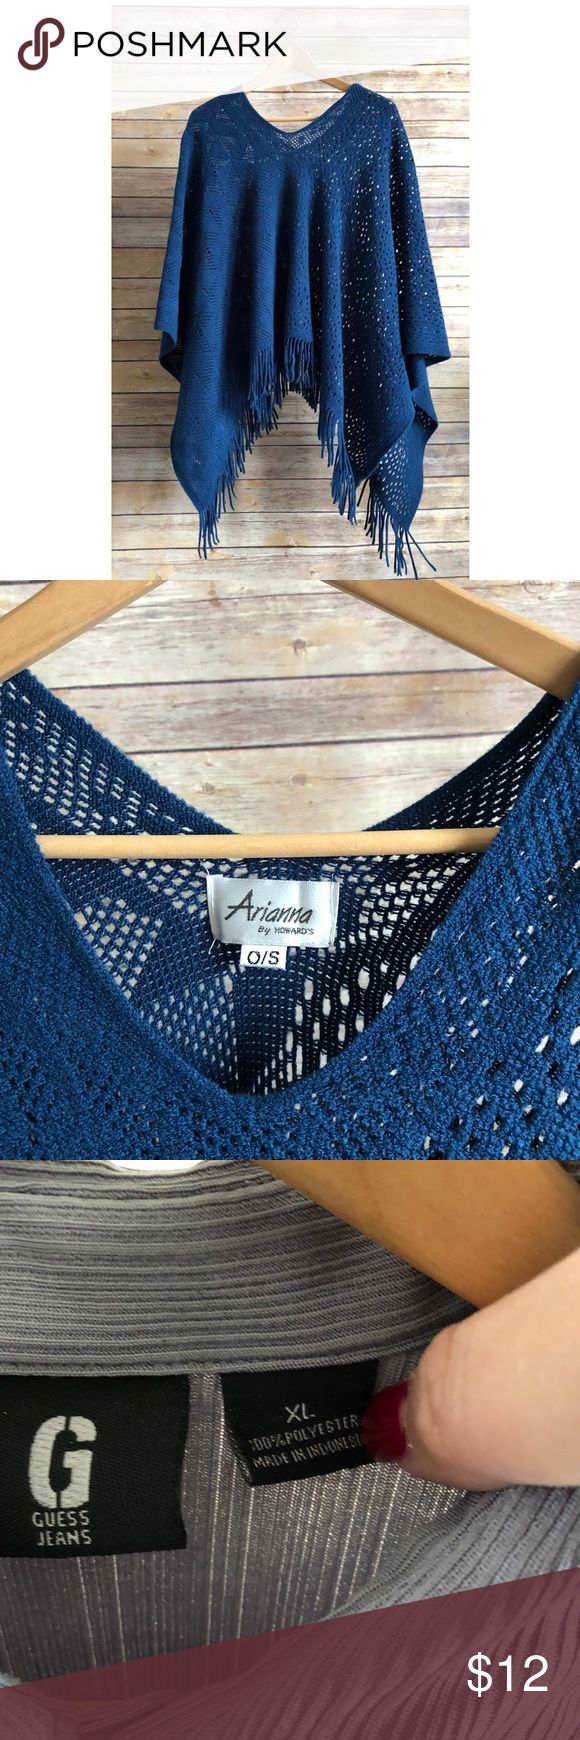 Arianna by Howard's Dark Blue knit Poncho Soft and cute Poncho to go with your casual outfit. It's in perfect condition! Louis Vuitton Sweaters Shrugs & Ponchos